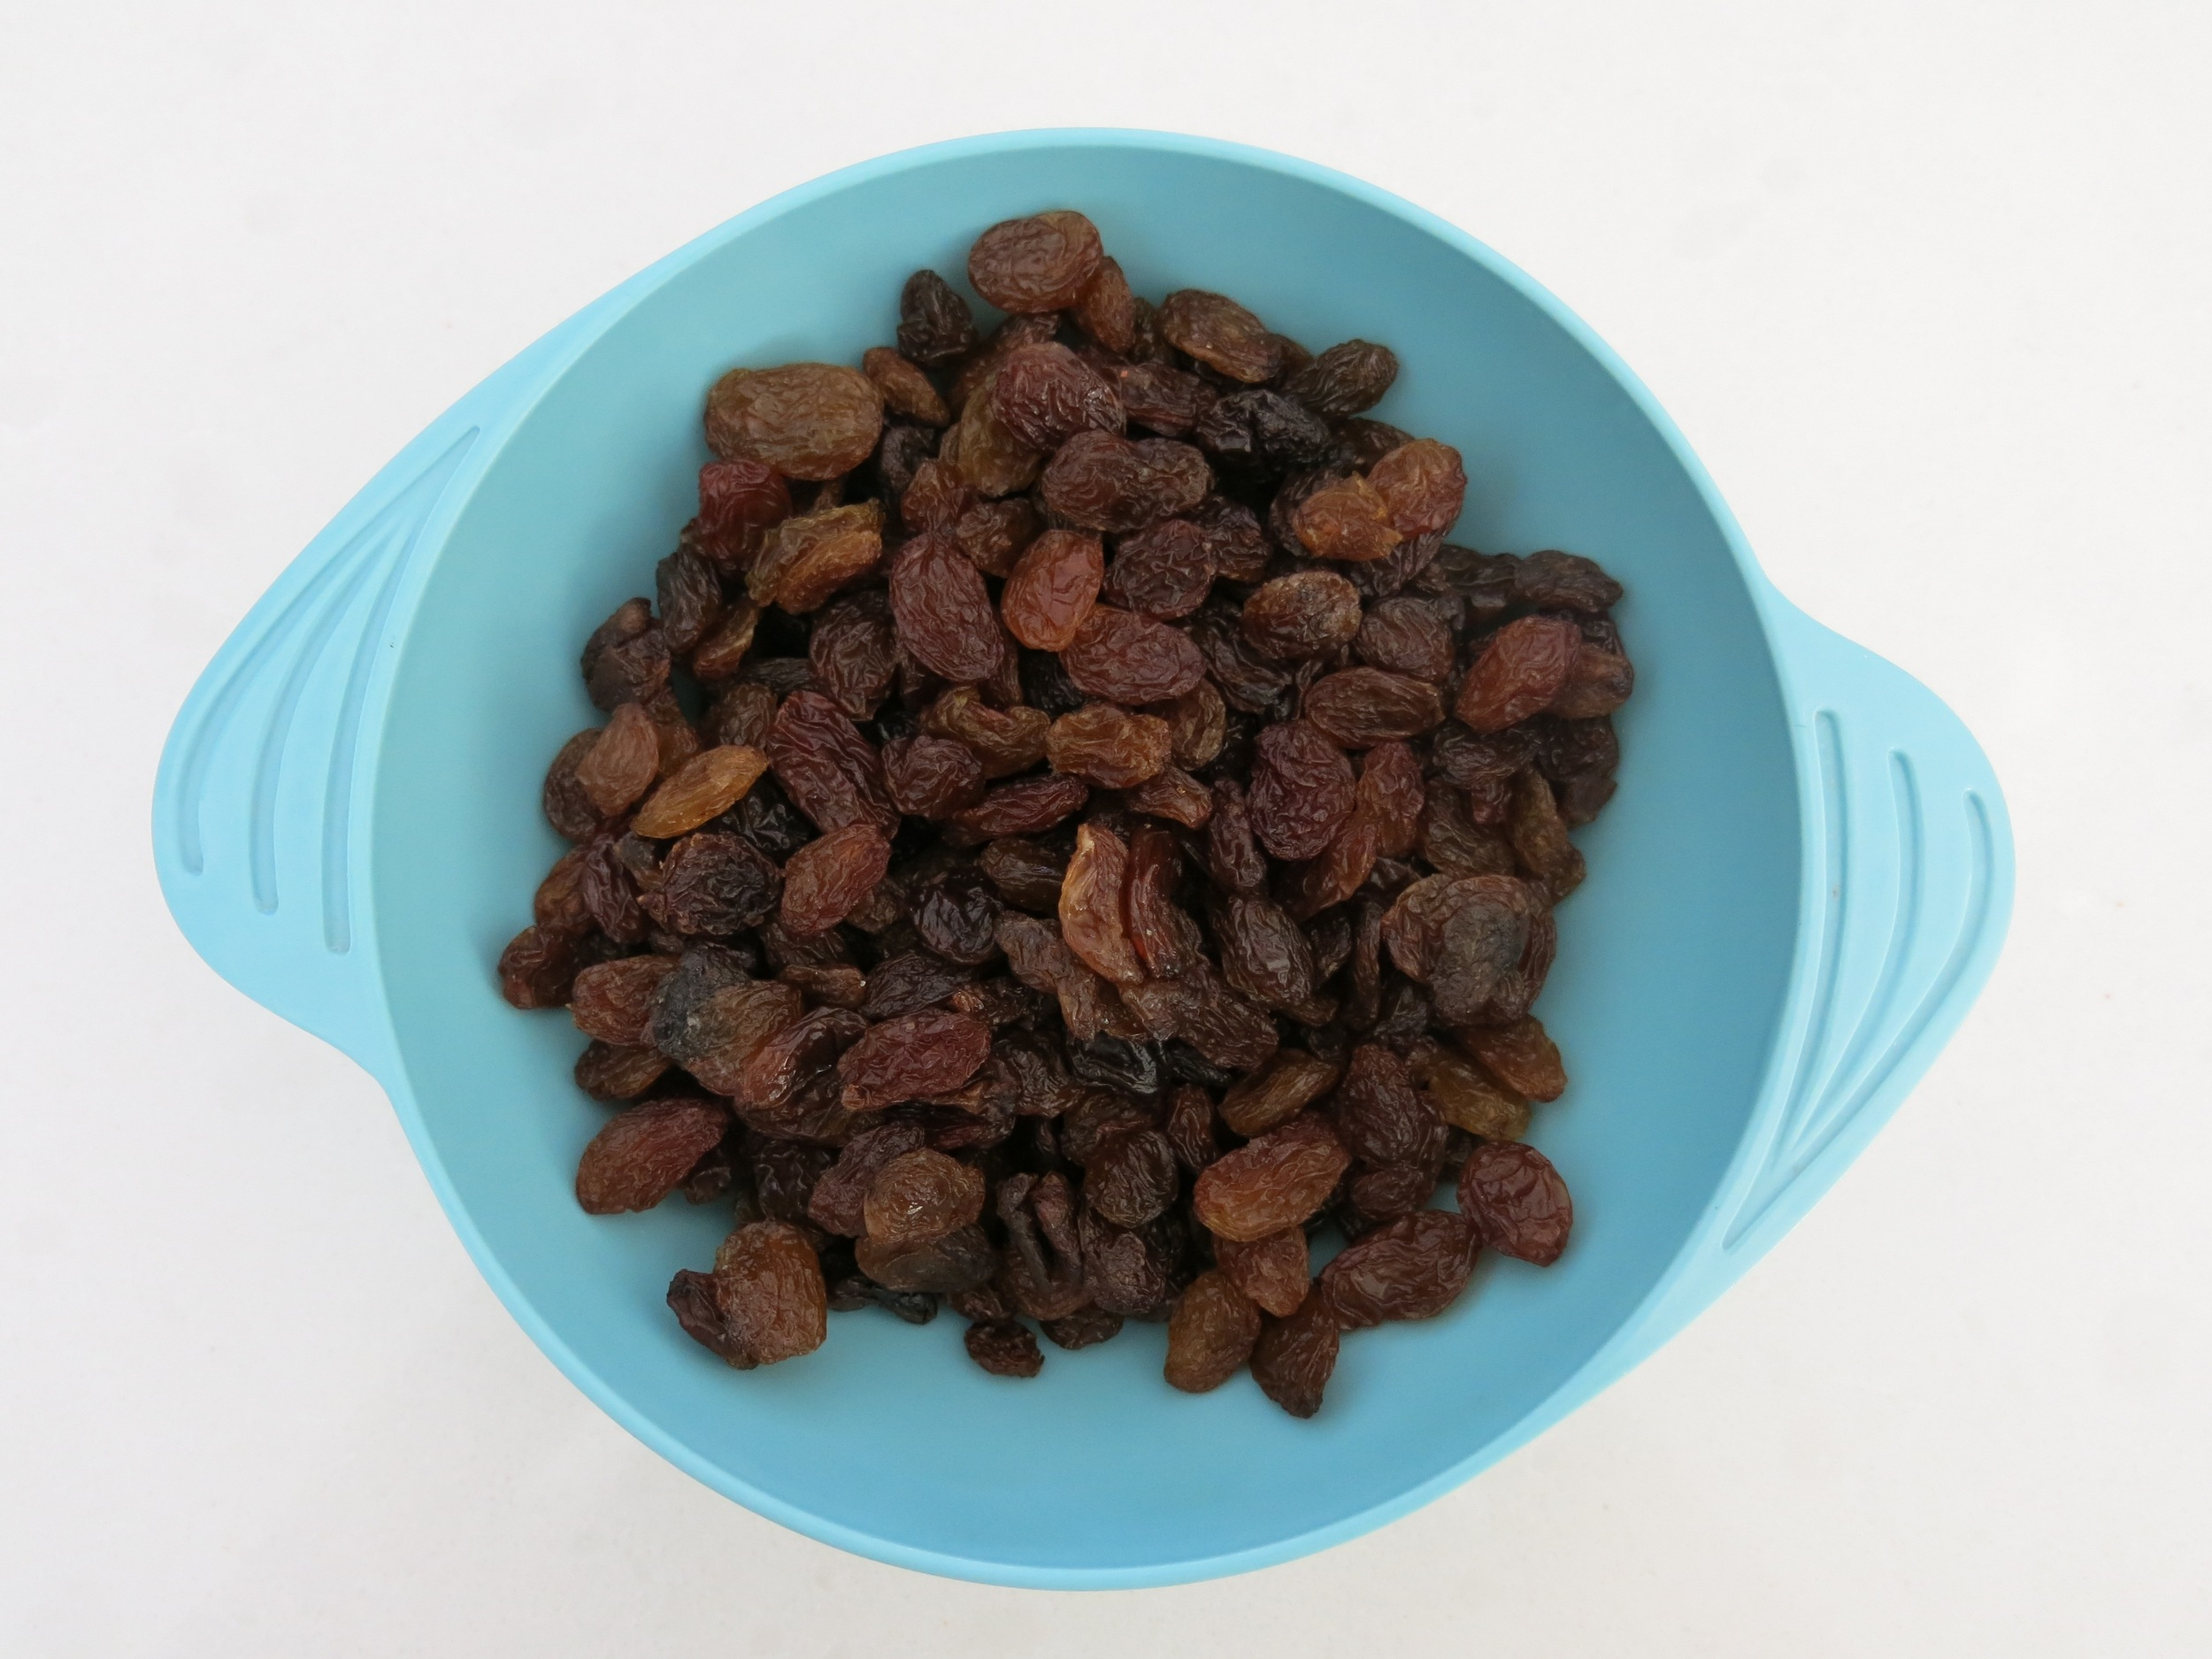 Here's what a cup of raisins looks like. In case you weren't sure.